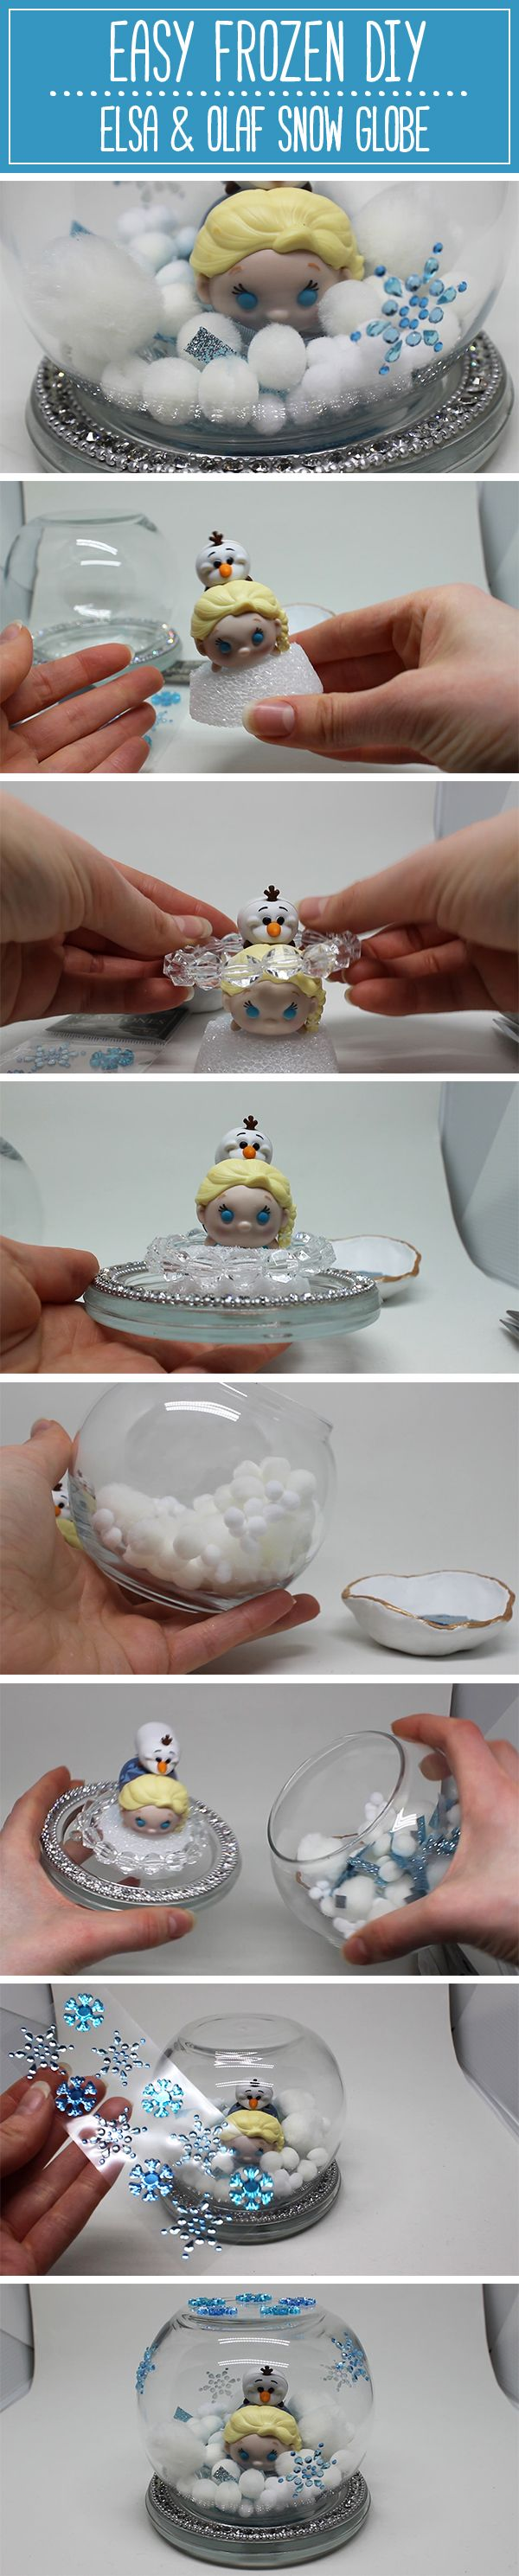 The easiest Disney Frozen DIY ever! A beautiful snow globe made with Elsa and Olaf Tsum Tsums. So cute and SO simple. | Made by HeyAlexHough. Follow her on youtube! <3 | #disneyDIY #FrozenDIY #DisneyFrozenDIY #TsumTsum #DisneyTsumTsum #TsumTsumDIY #DisneyCraft